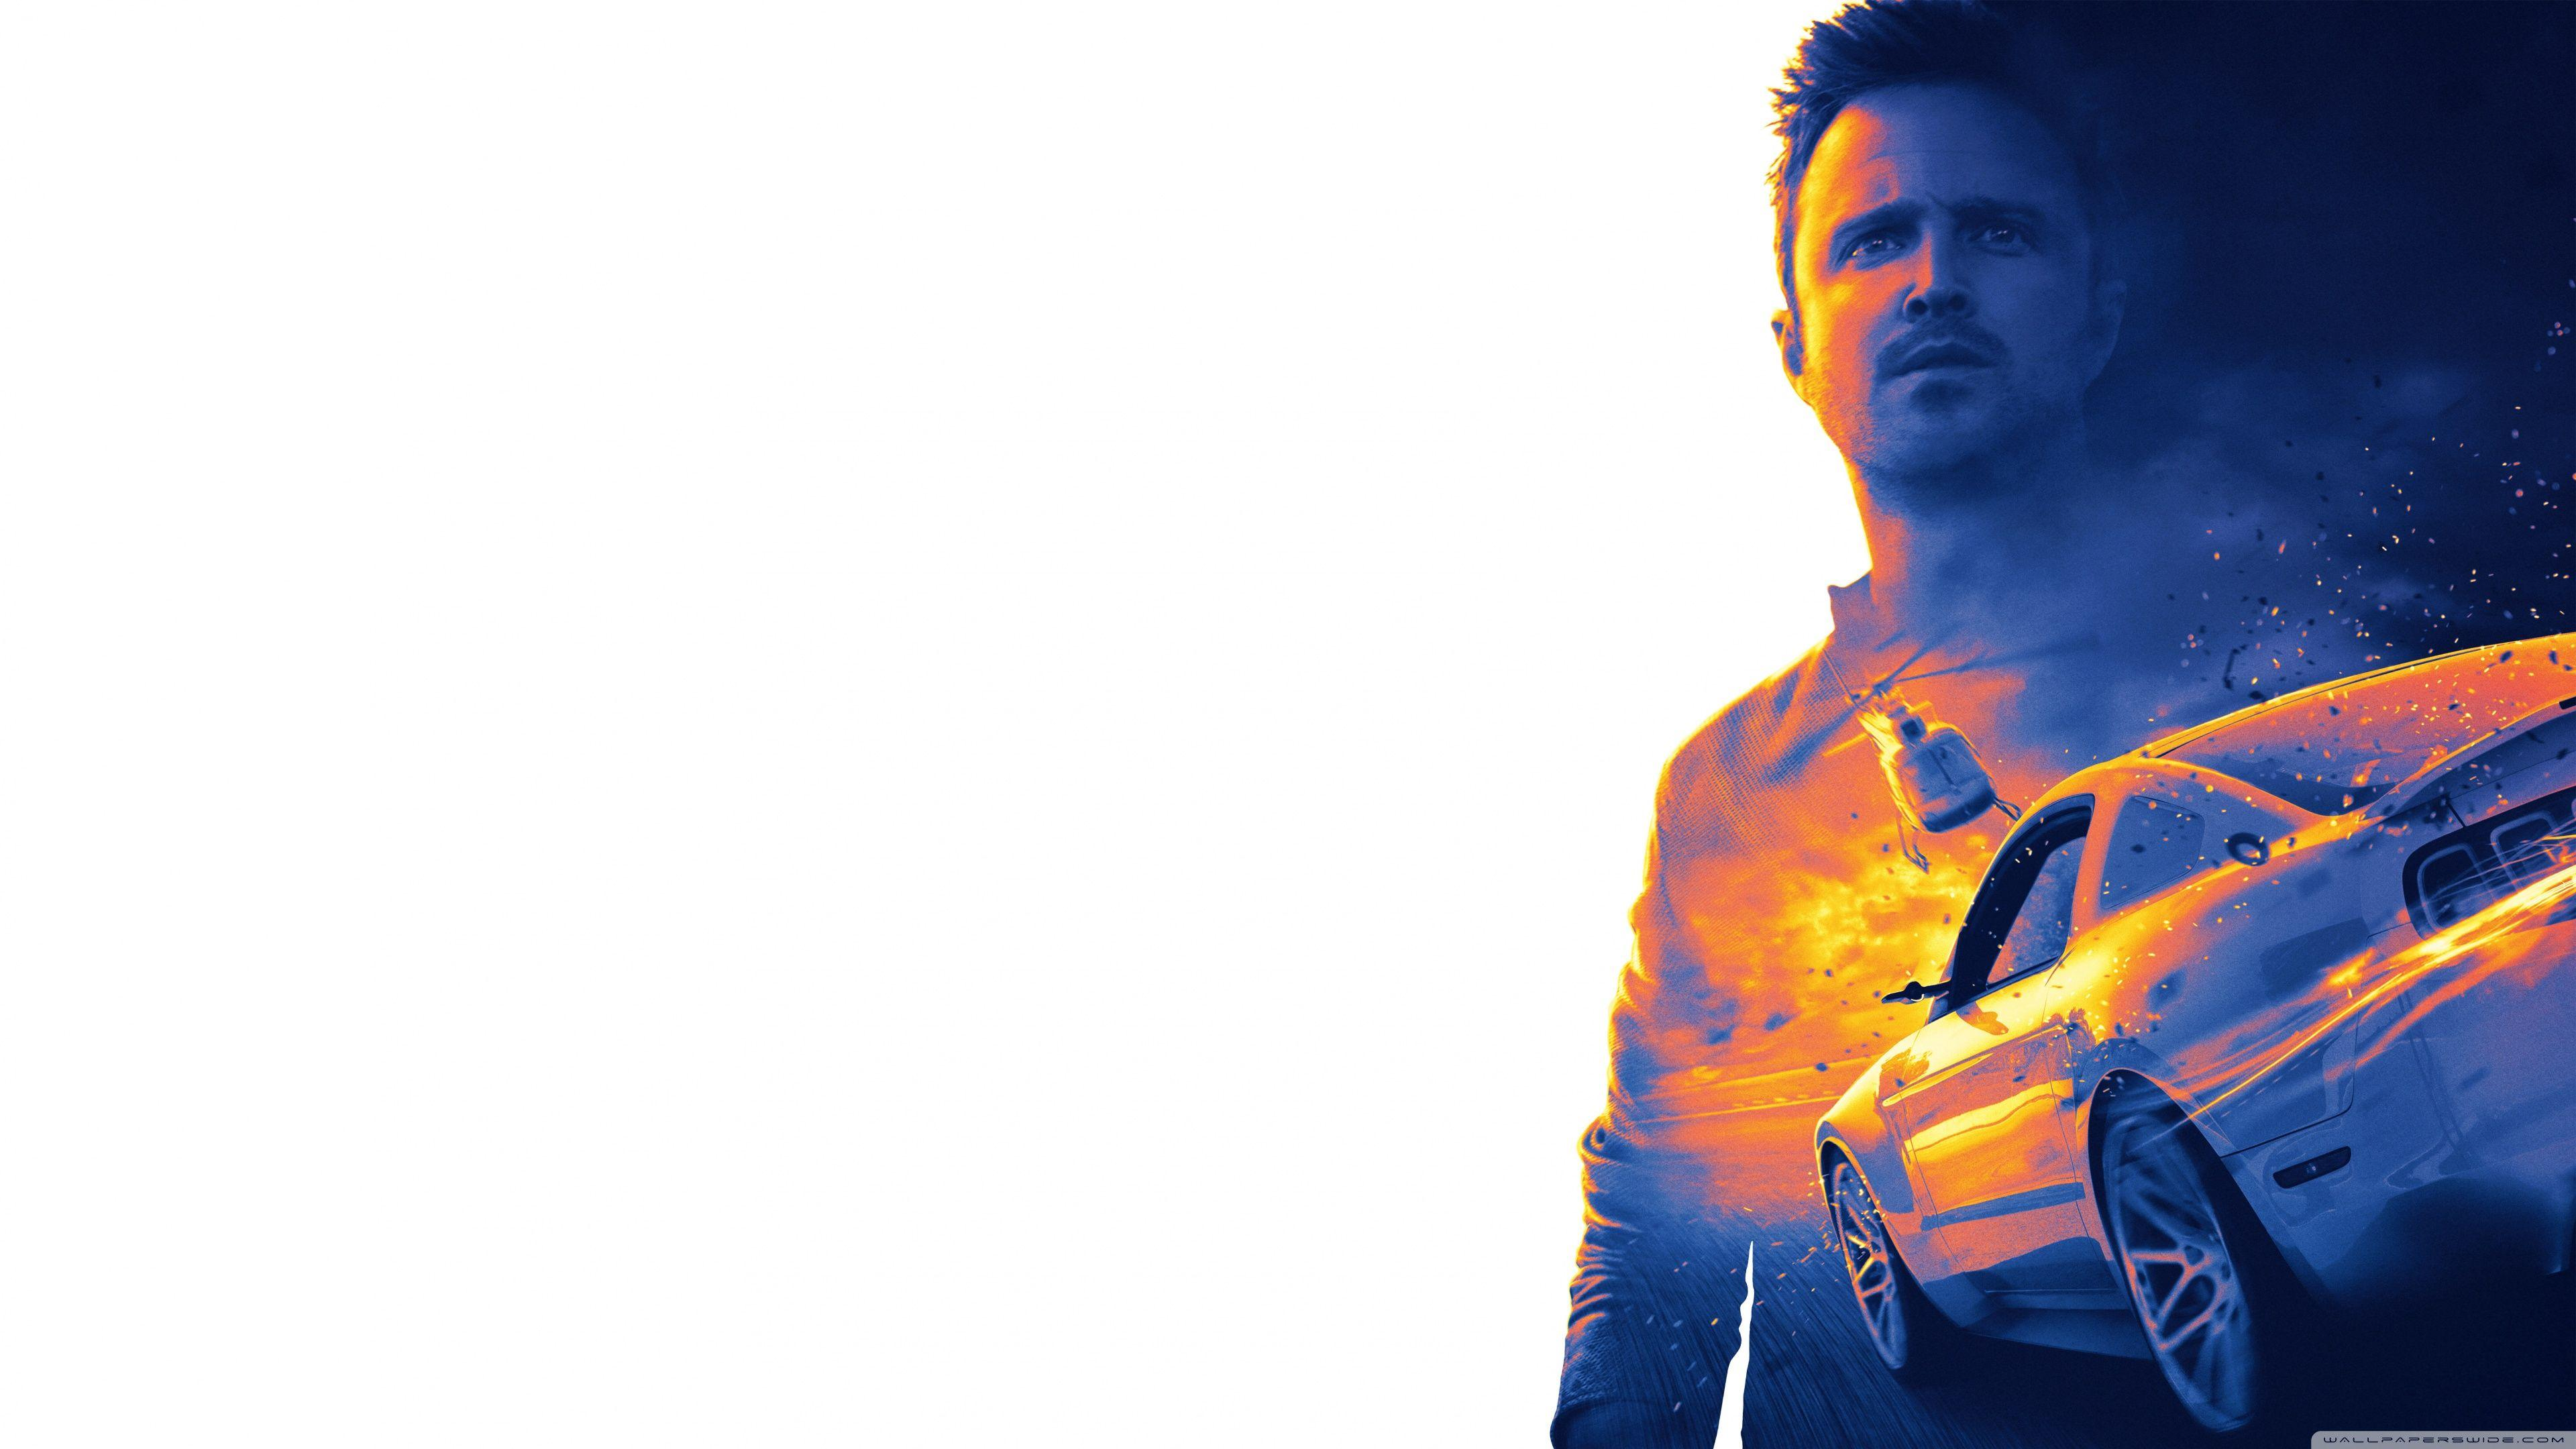 Need For Speed Movie Wallpapers - Wallpaper Cave